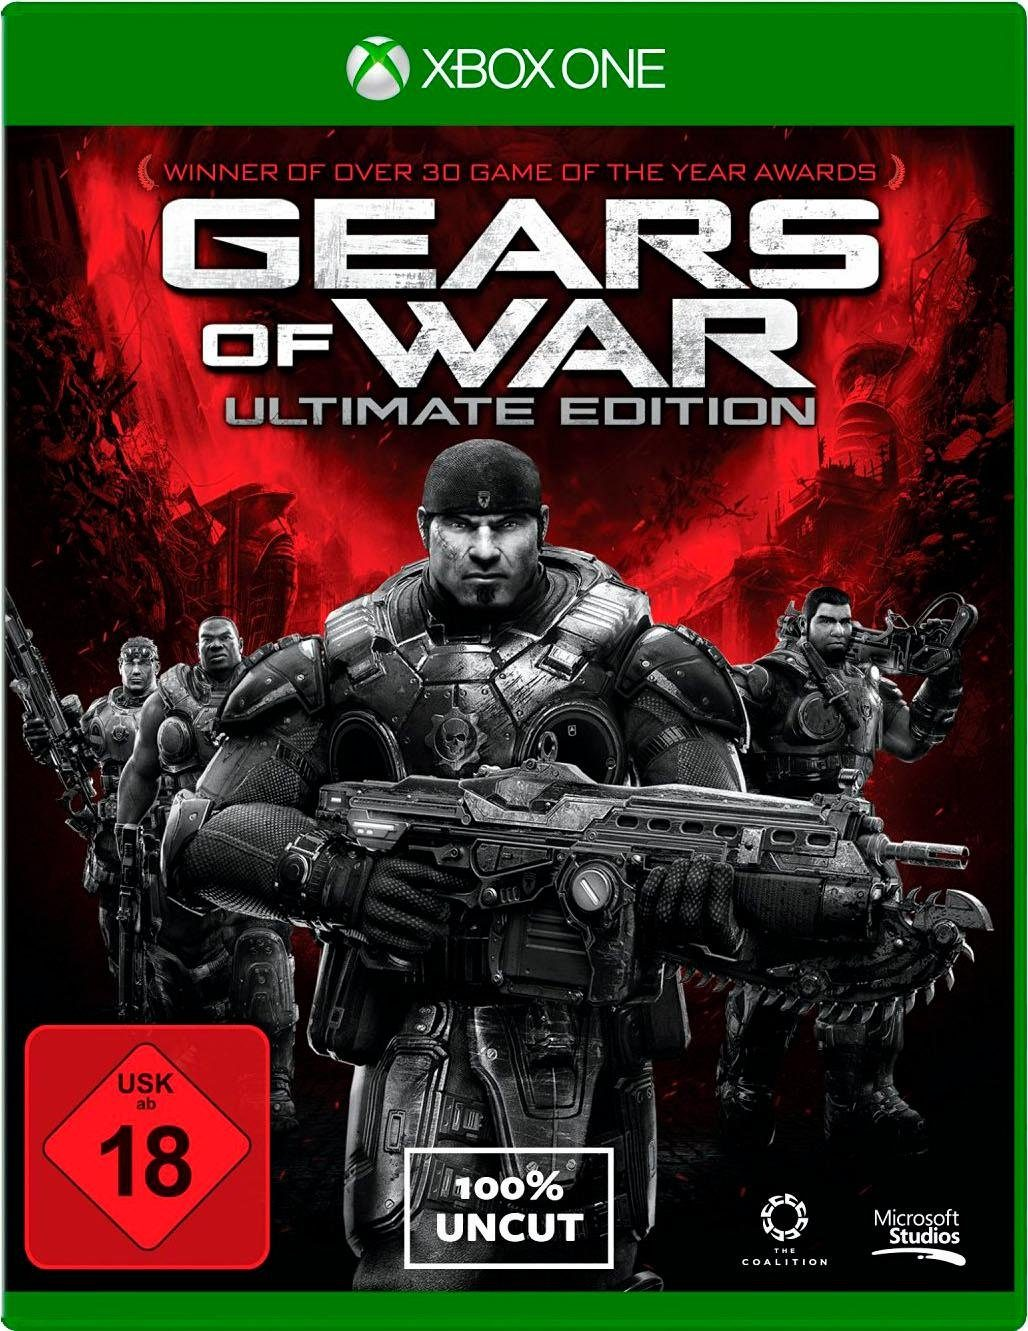 Gears of War Ultimate Edition 100% Uncut Xbox One